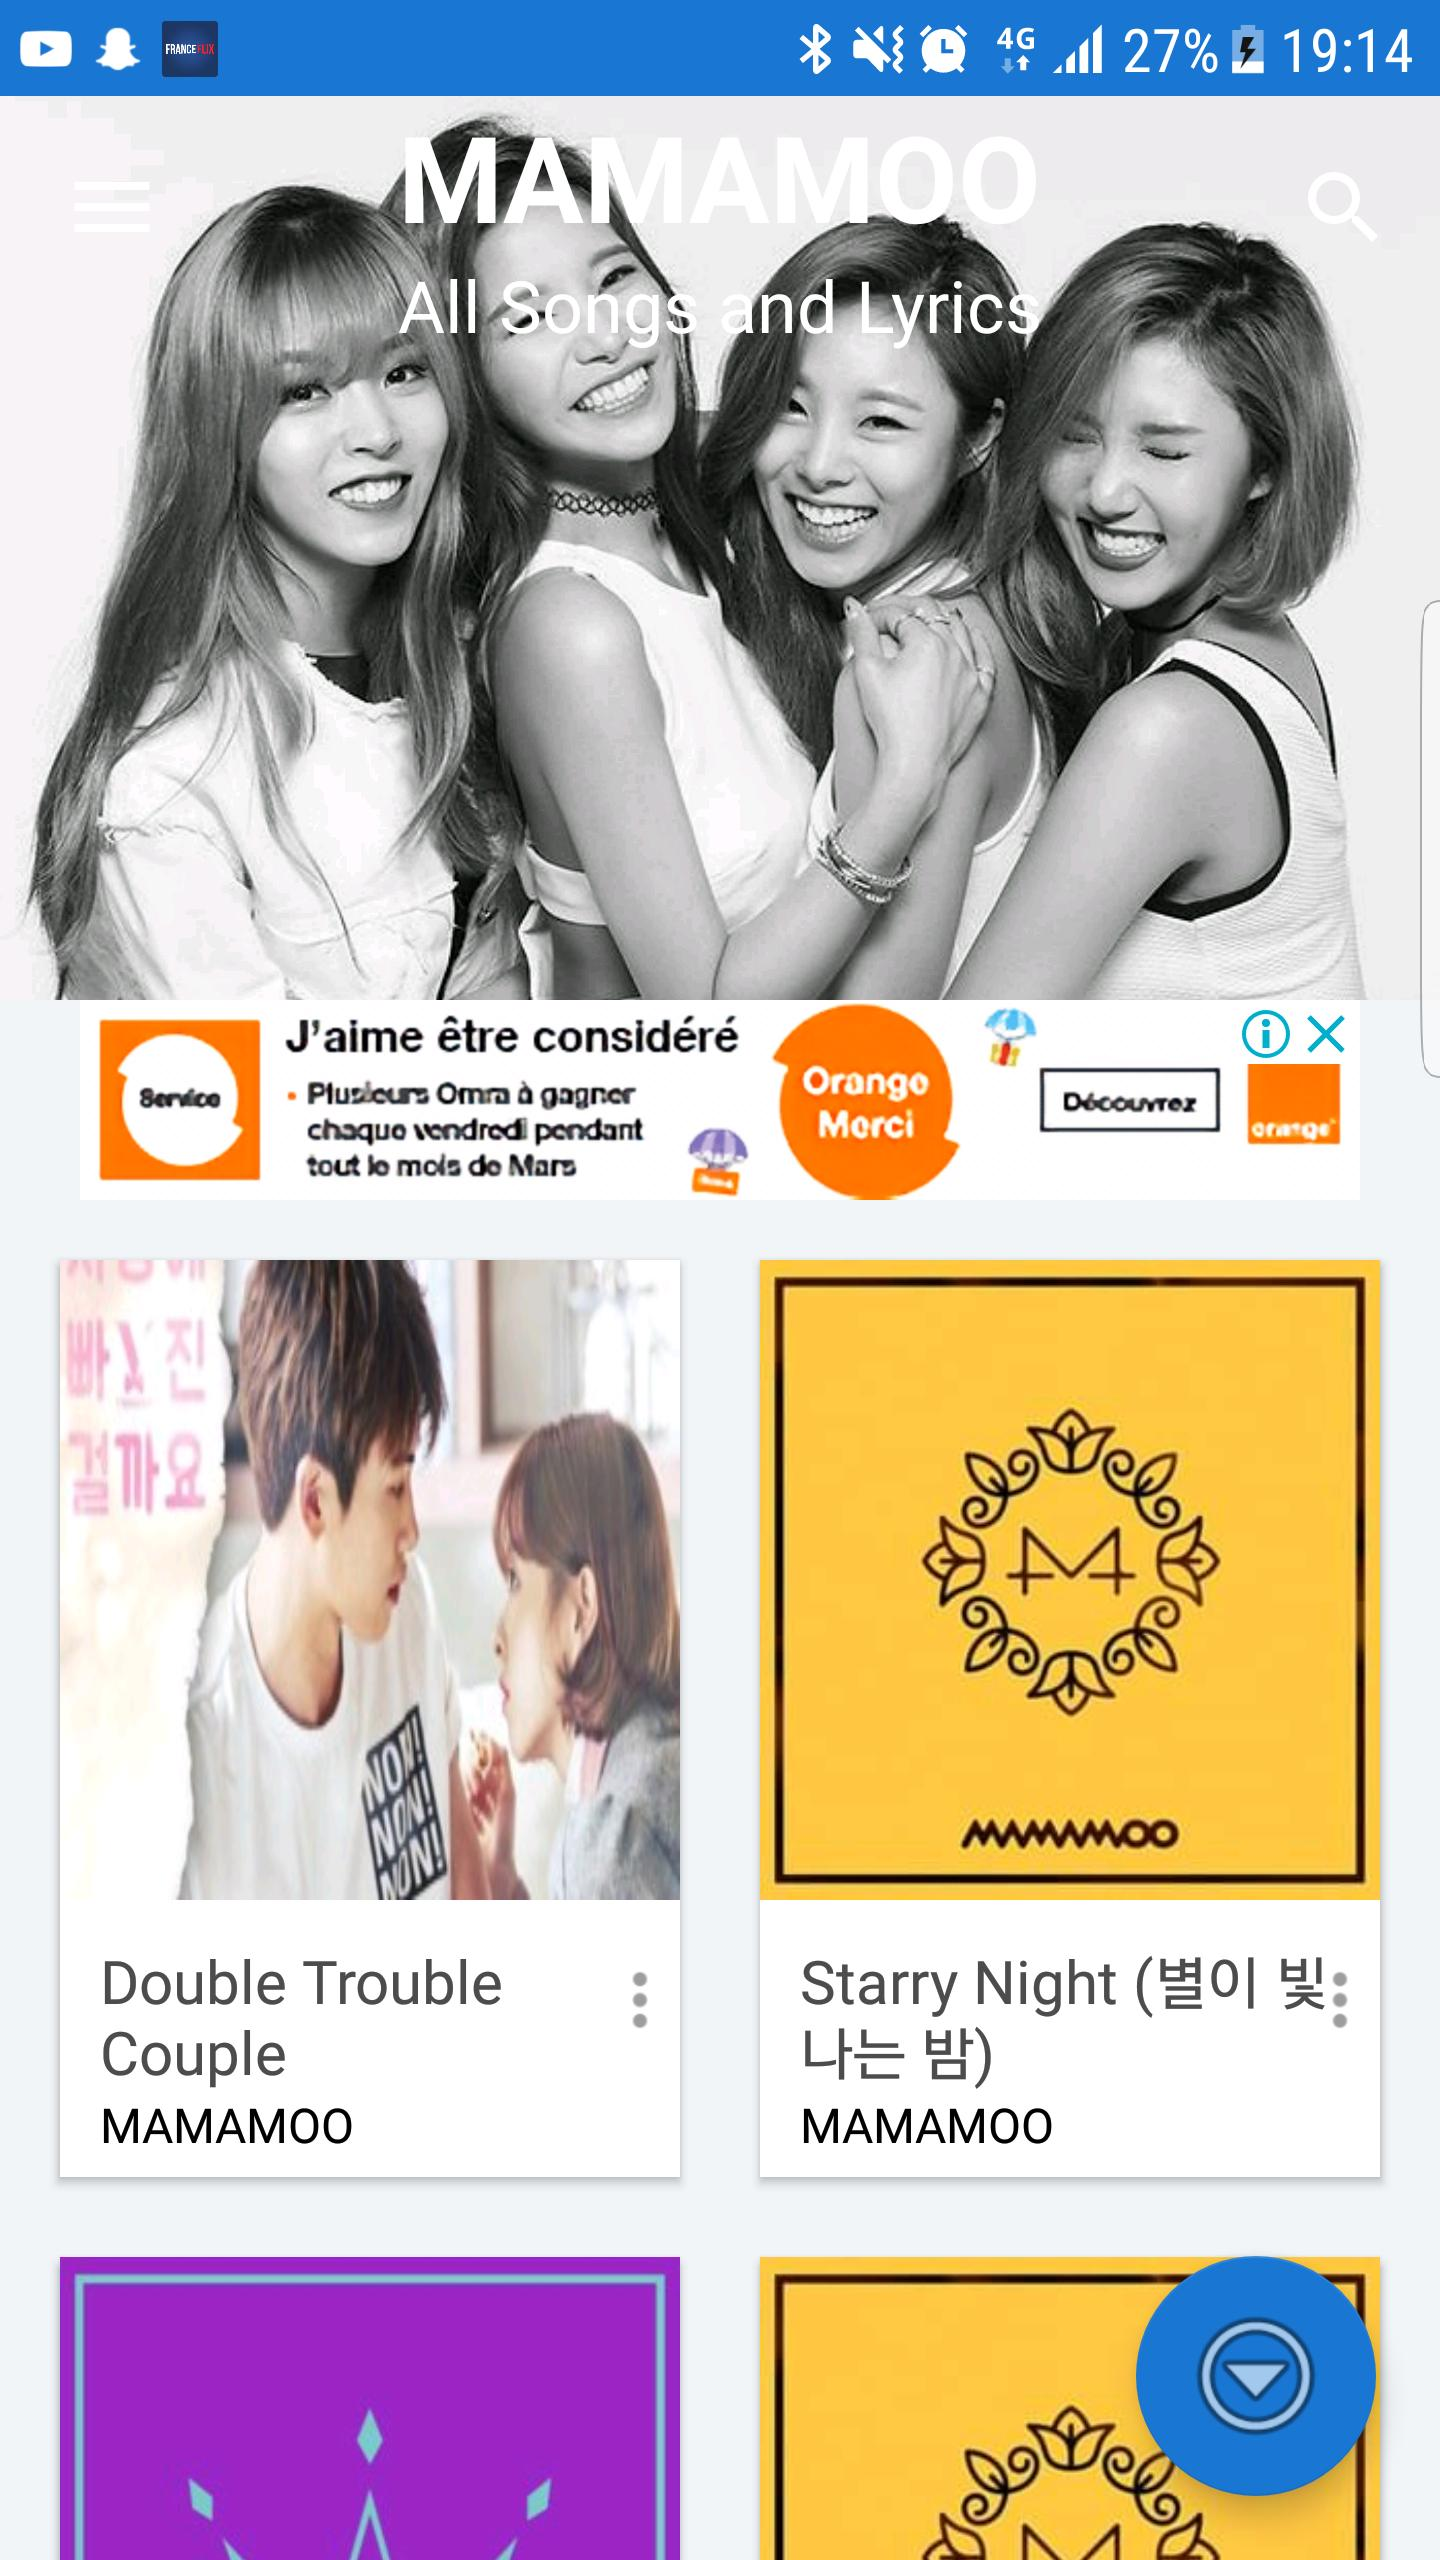 Mamamoo (마마무) all songs and lyrics for Android - APK Download